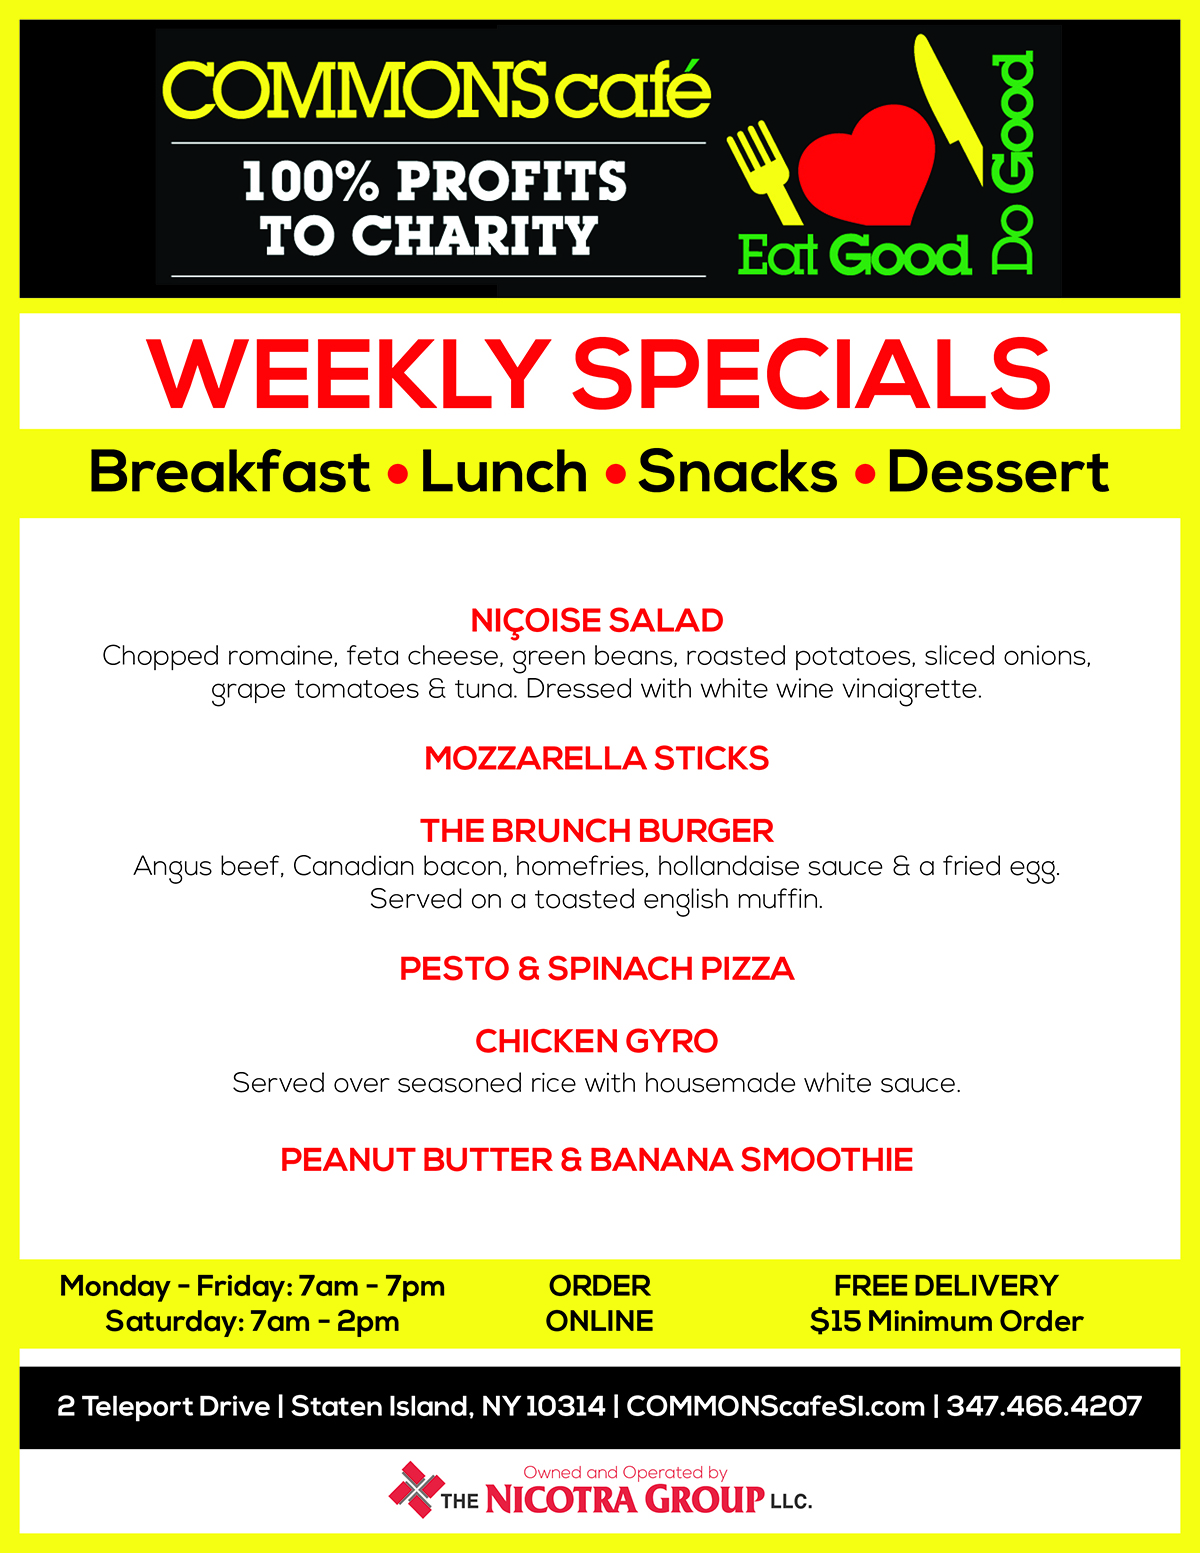 COMMONS CAFE WEEKLY SPECIALS APR 11- APR 17